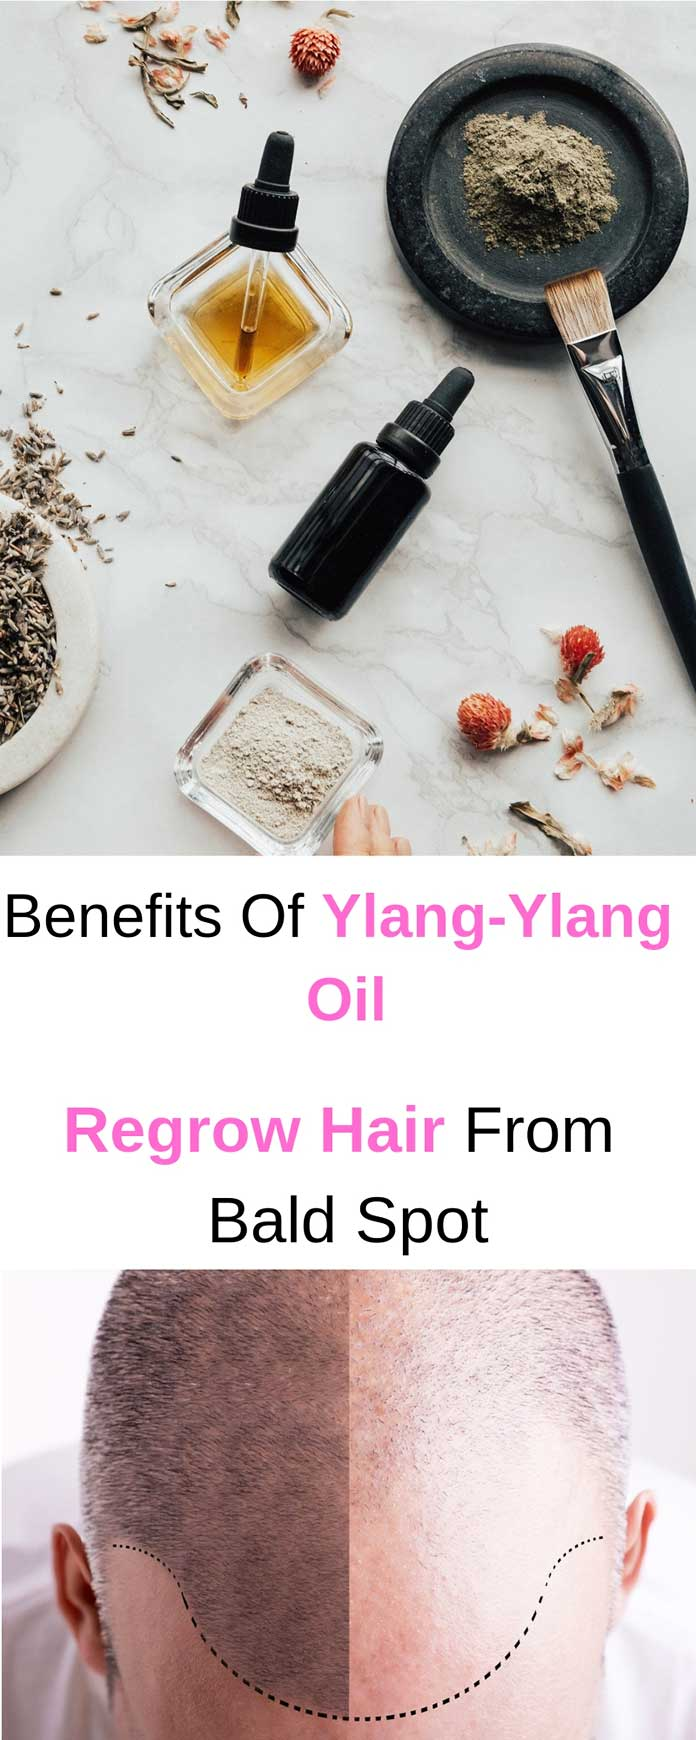 benefits of ylang ylang oil for hair growth